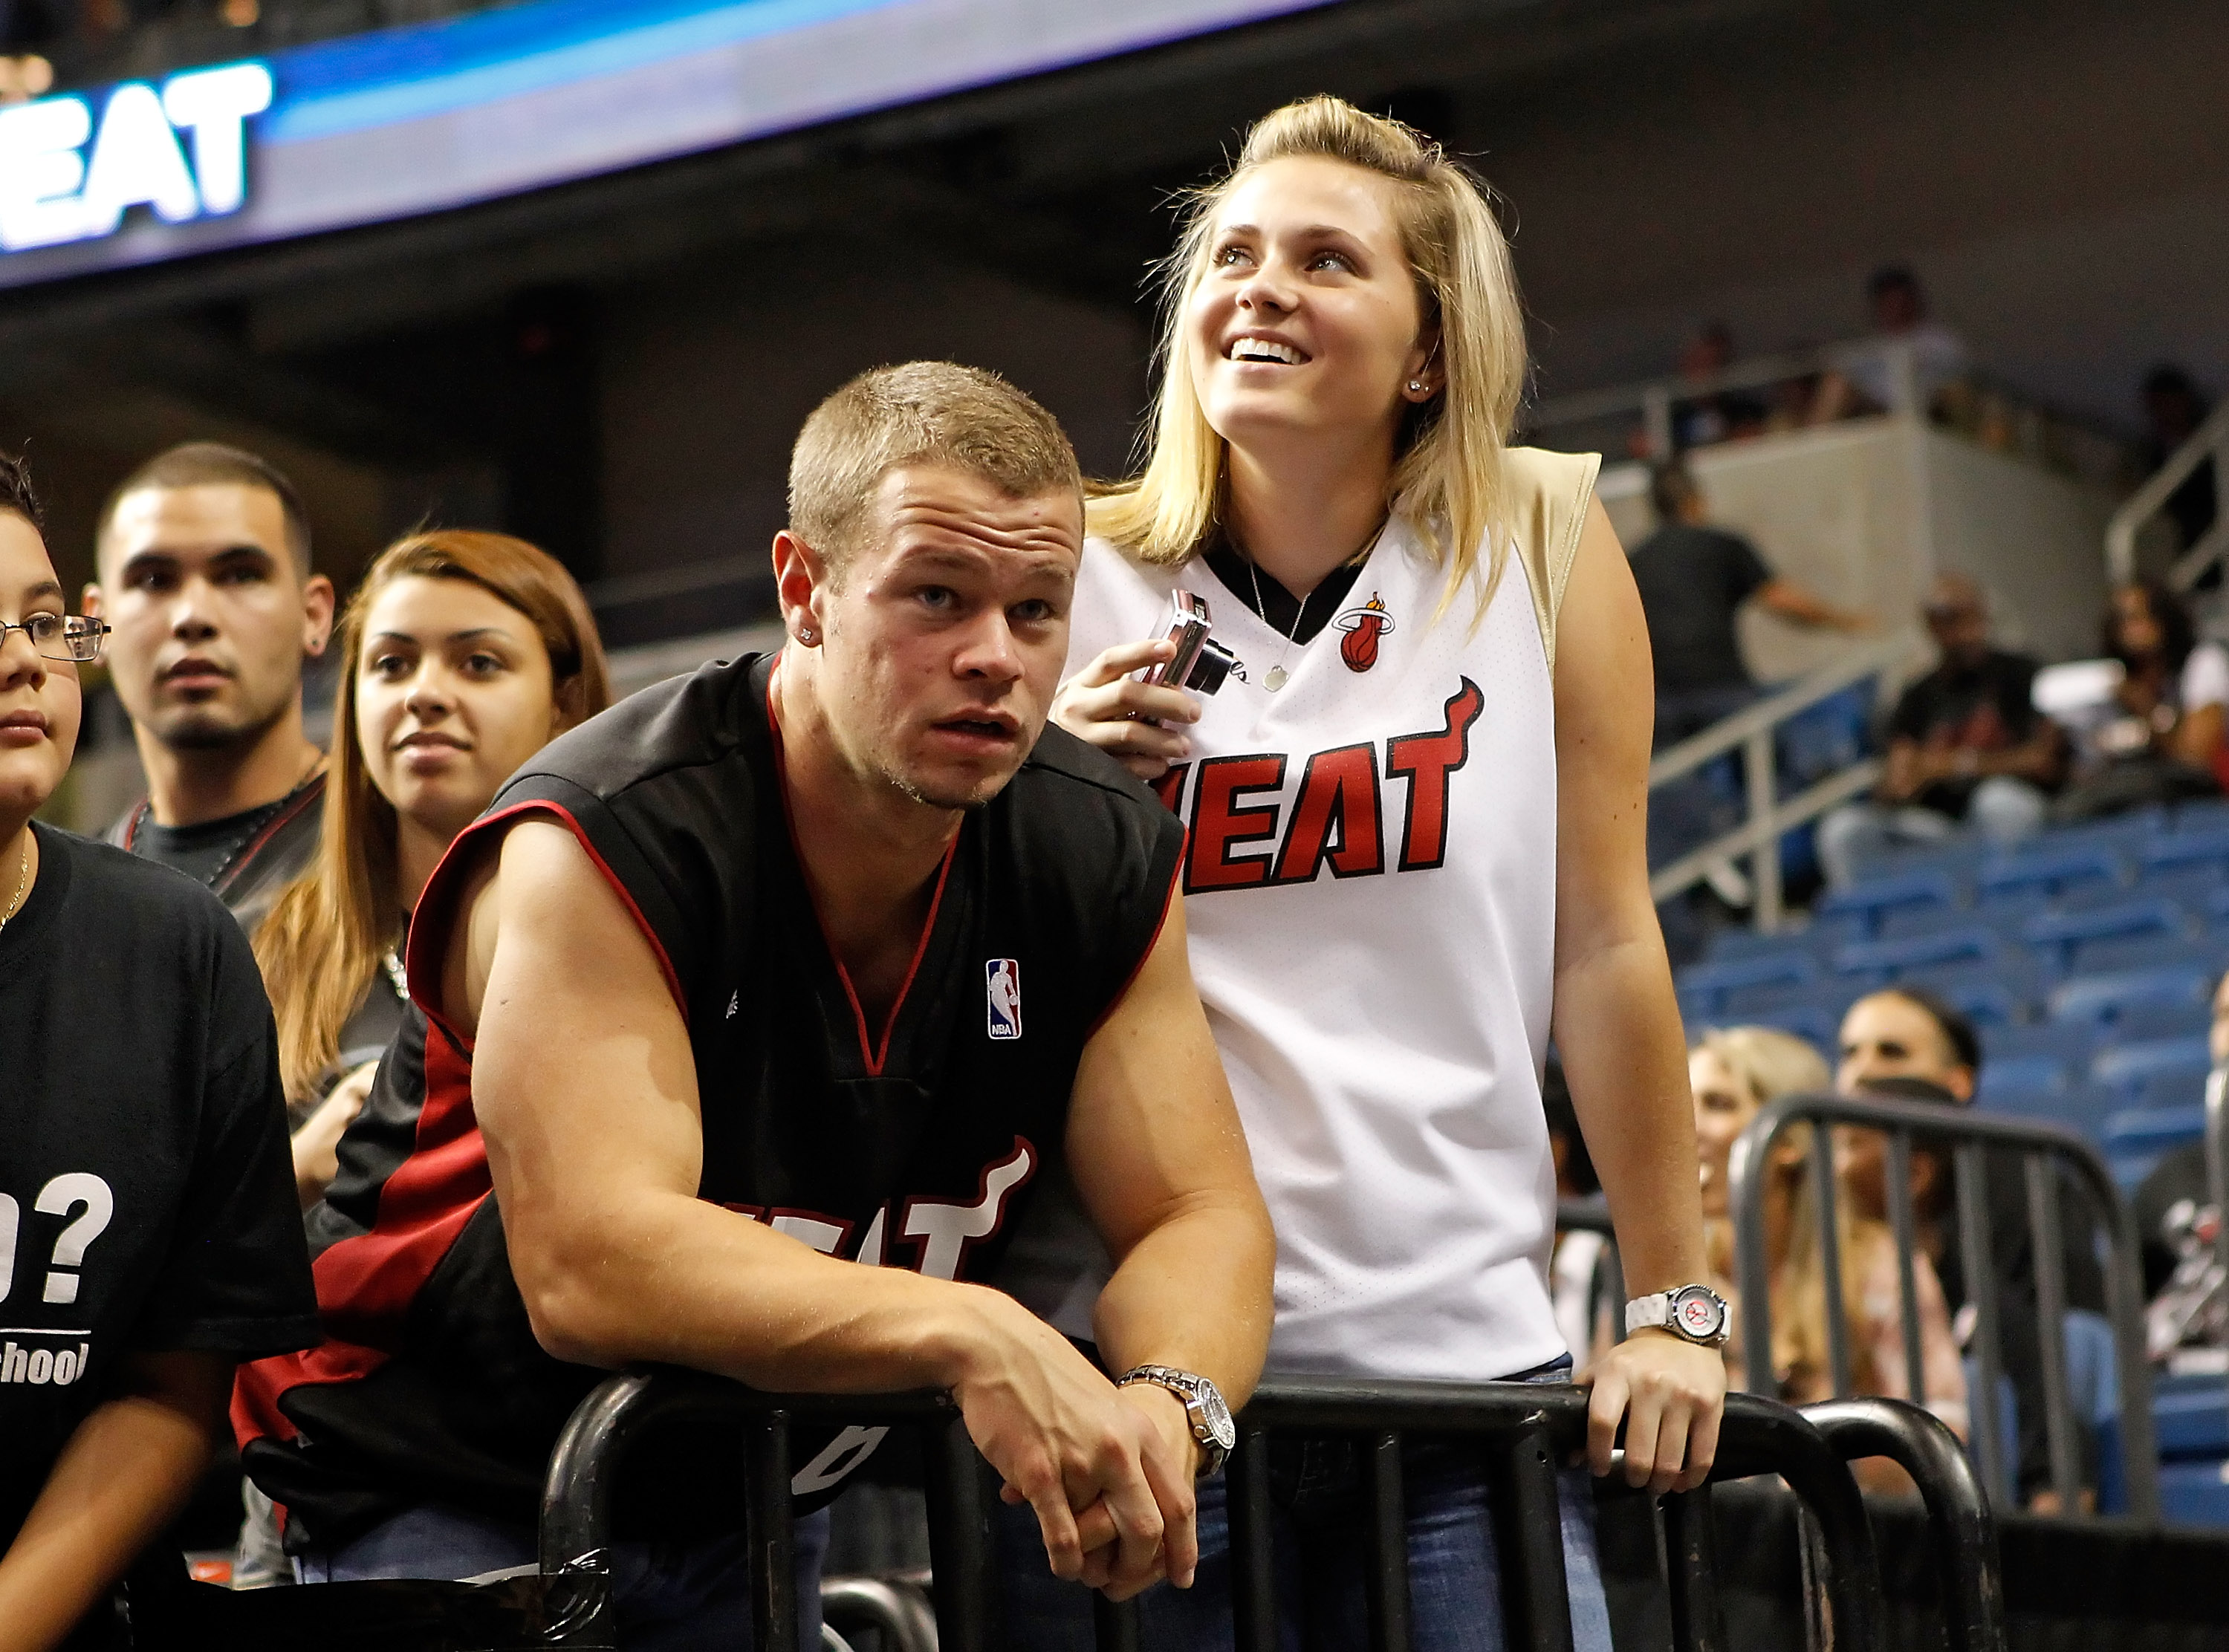 TAMPA, FL - OCTOBER 22:  Fans of the Miami Heat react to the game being cancelled due to a slippery court against the Orlando Magic at the St. Pete Times Forum on October 22, 2010 in Tampa, Florida.  NOTE TO USER: User expressly acknowledges and agrees th